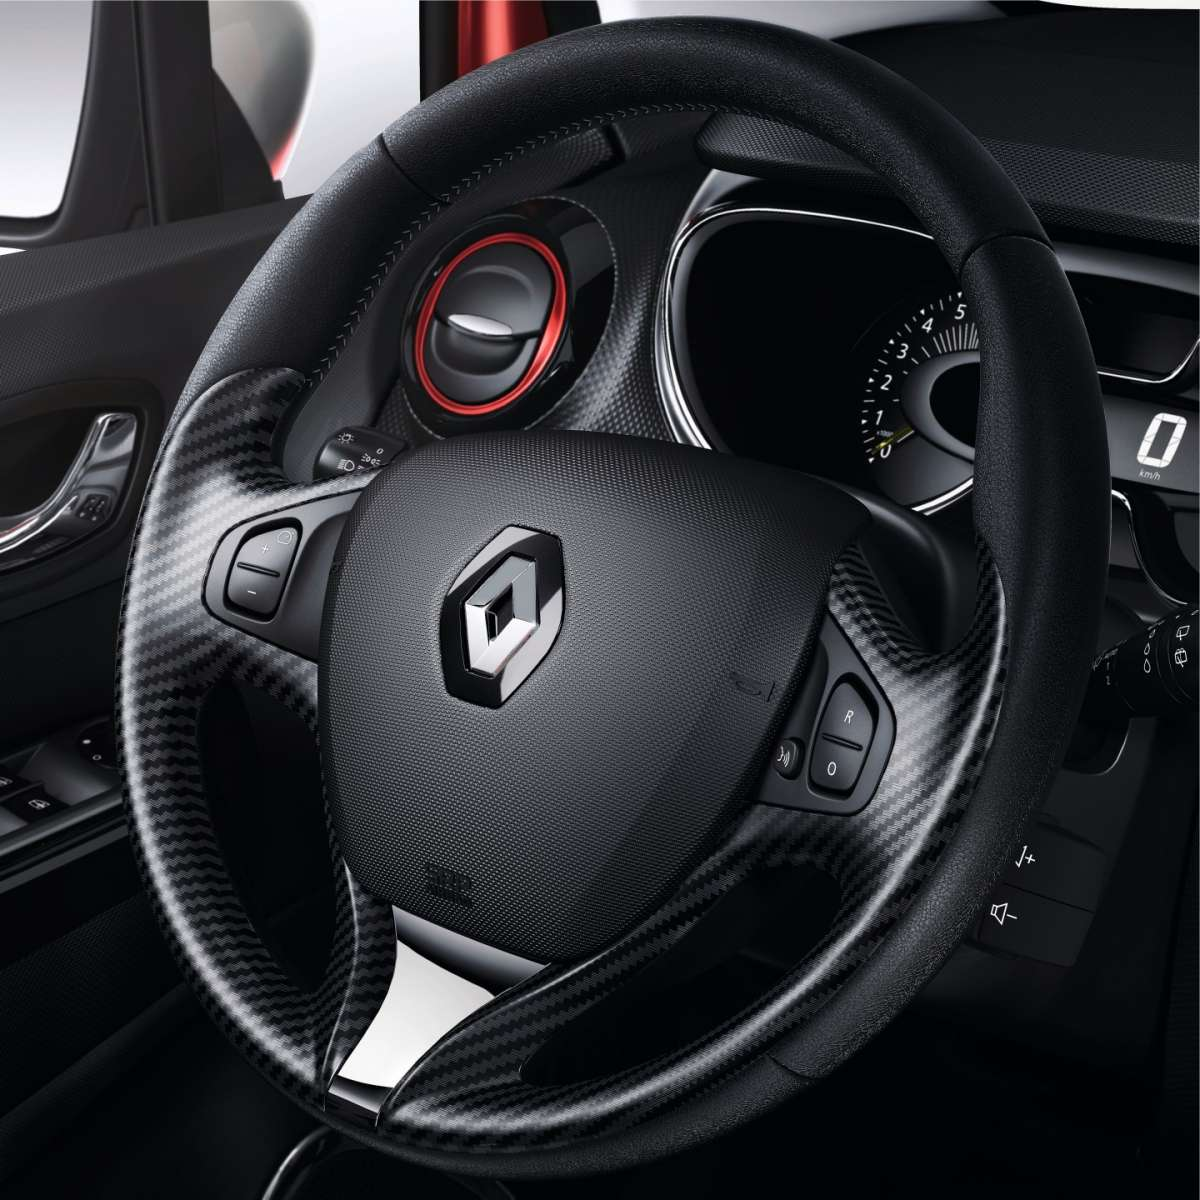 Volante in pelle Captur Excite